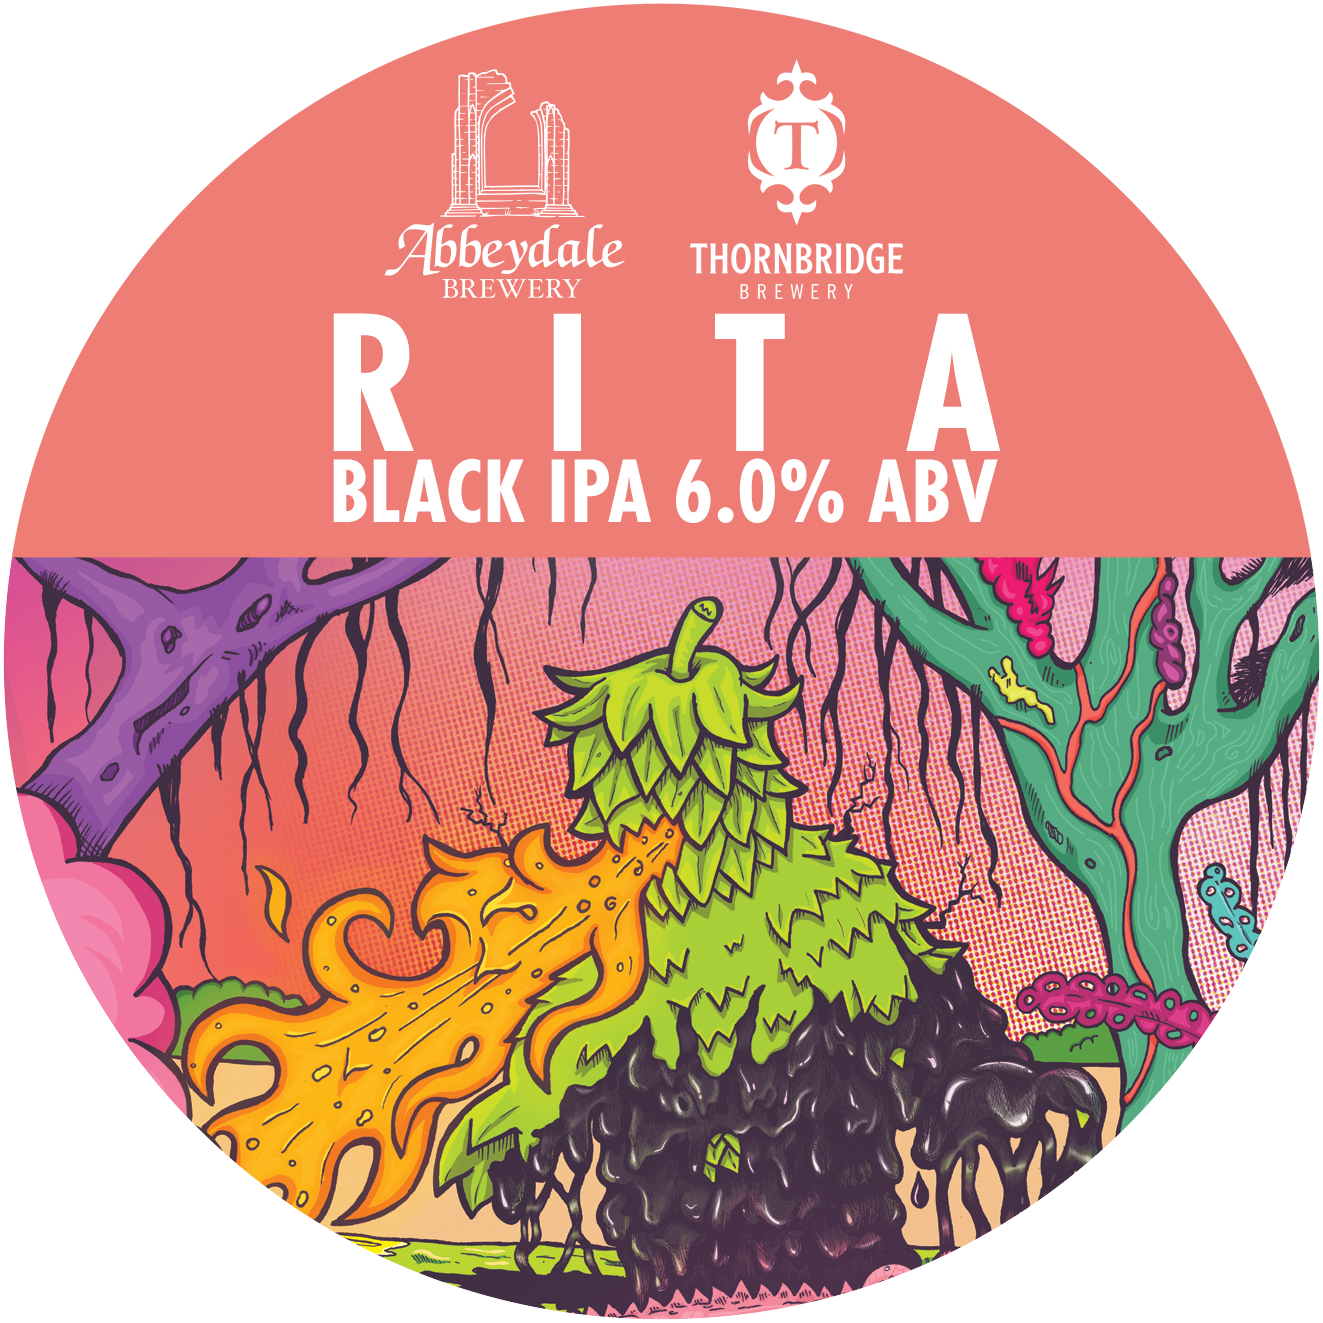 Craft Beer Label Illustration - Abbeydale Brewery x Thornbridge Brewery - Rita Black IPA Keg Artwork